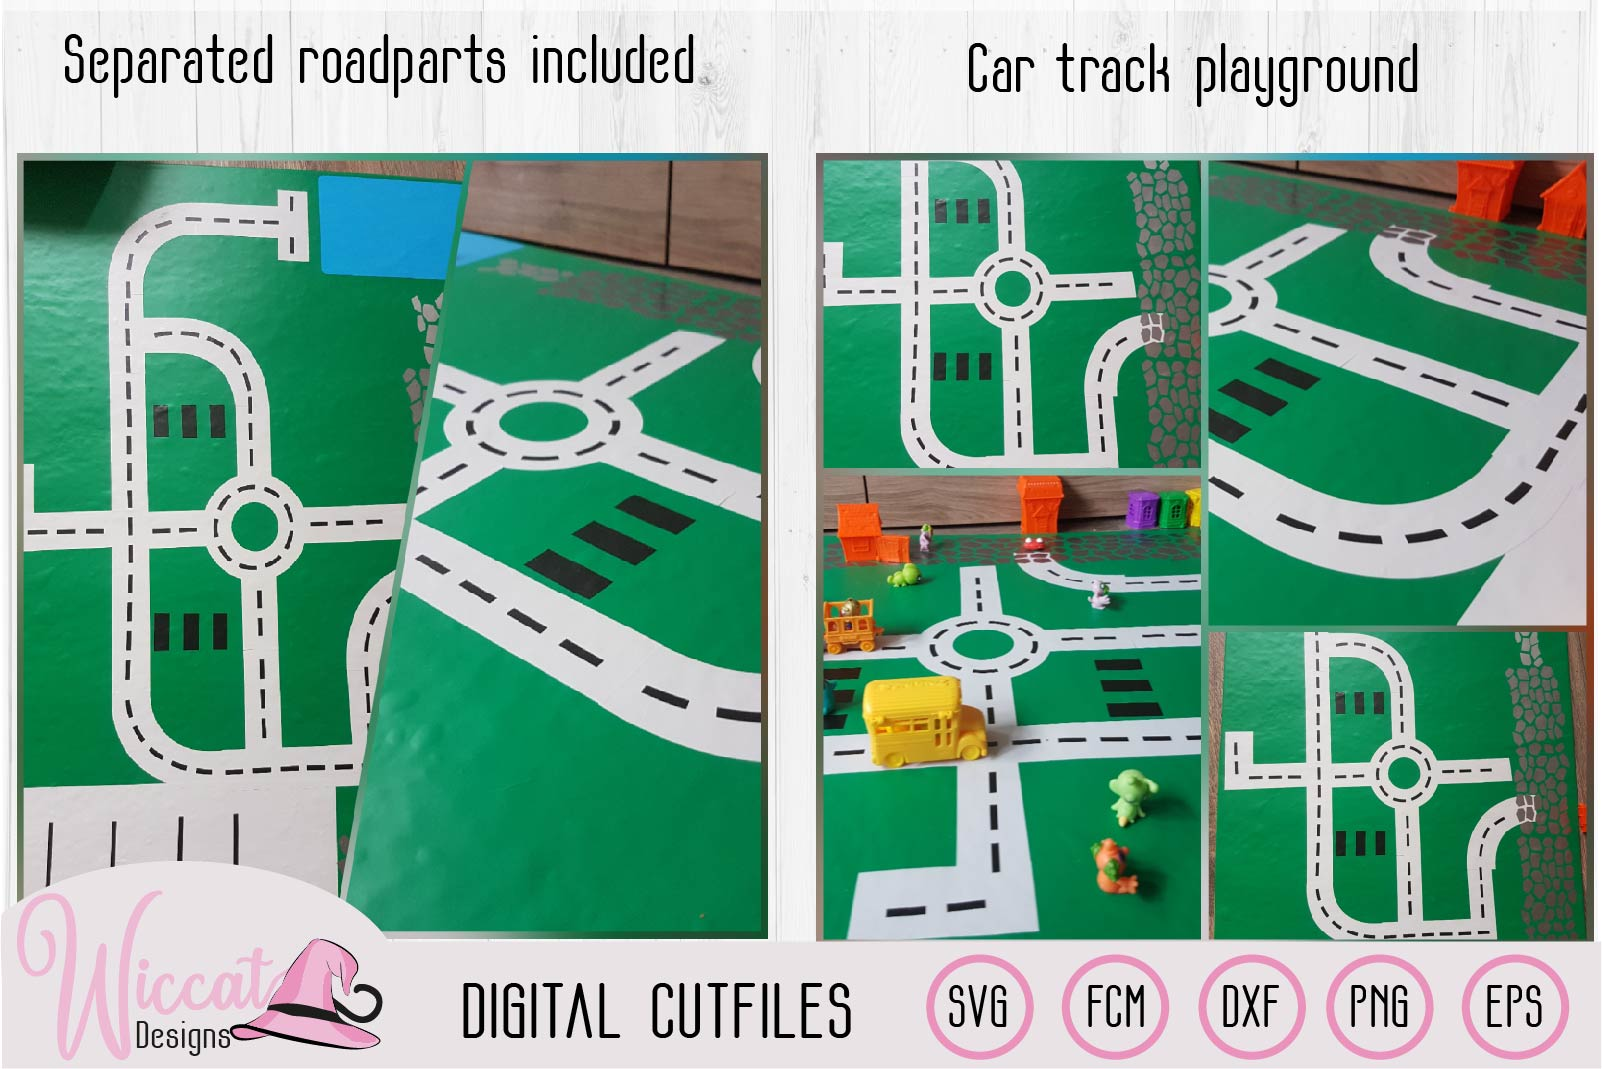 Car track, Road map, Car playground, boys design, road parts example image 3